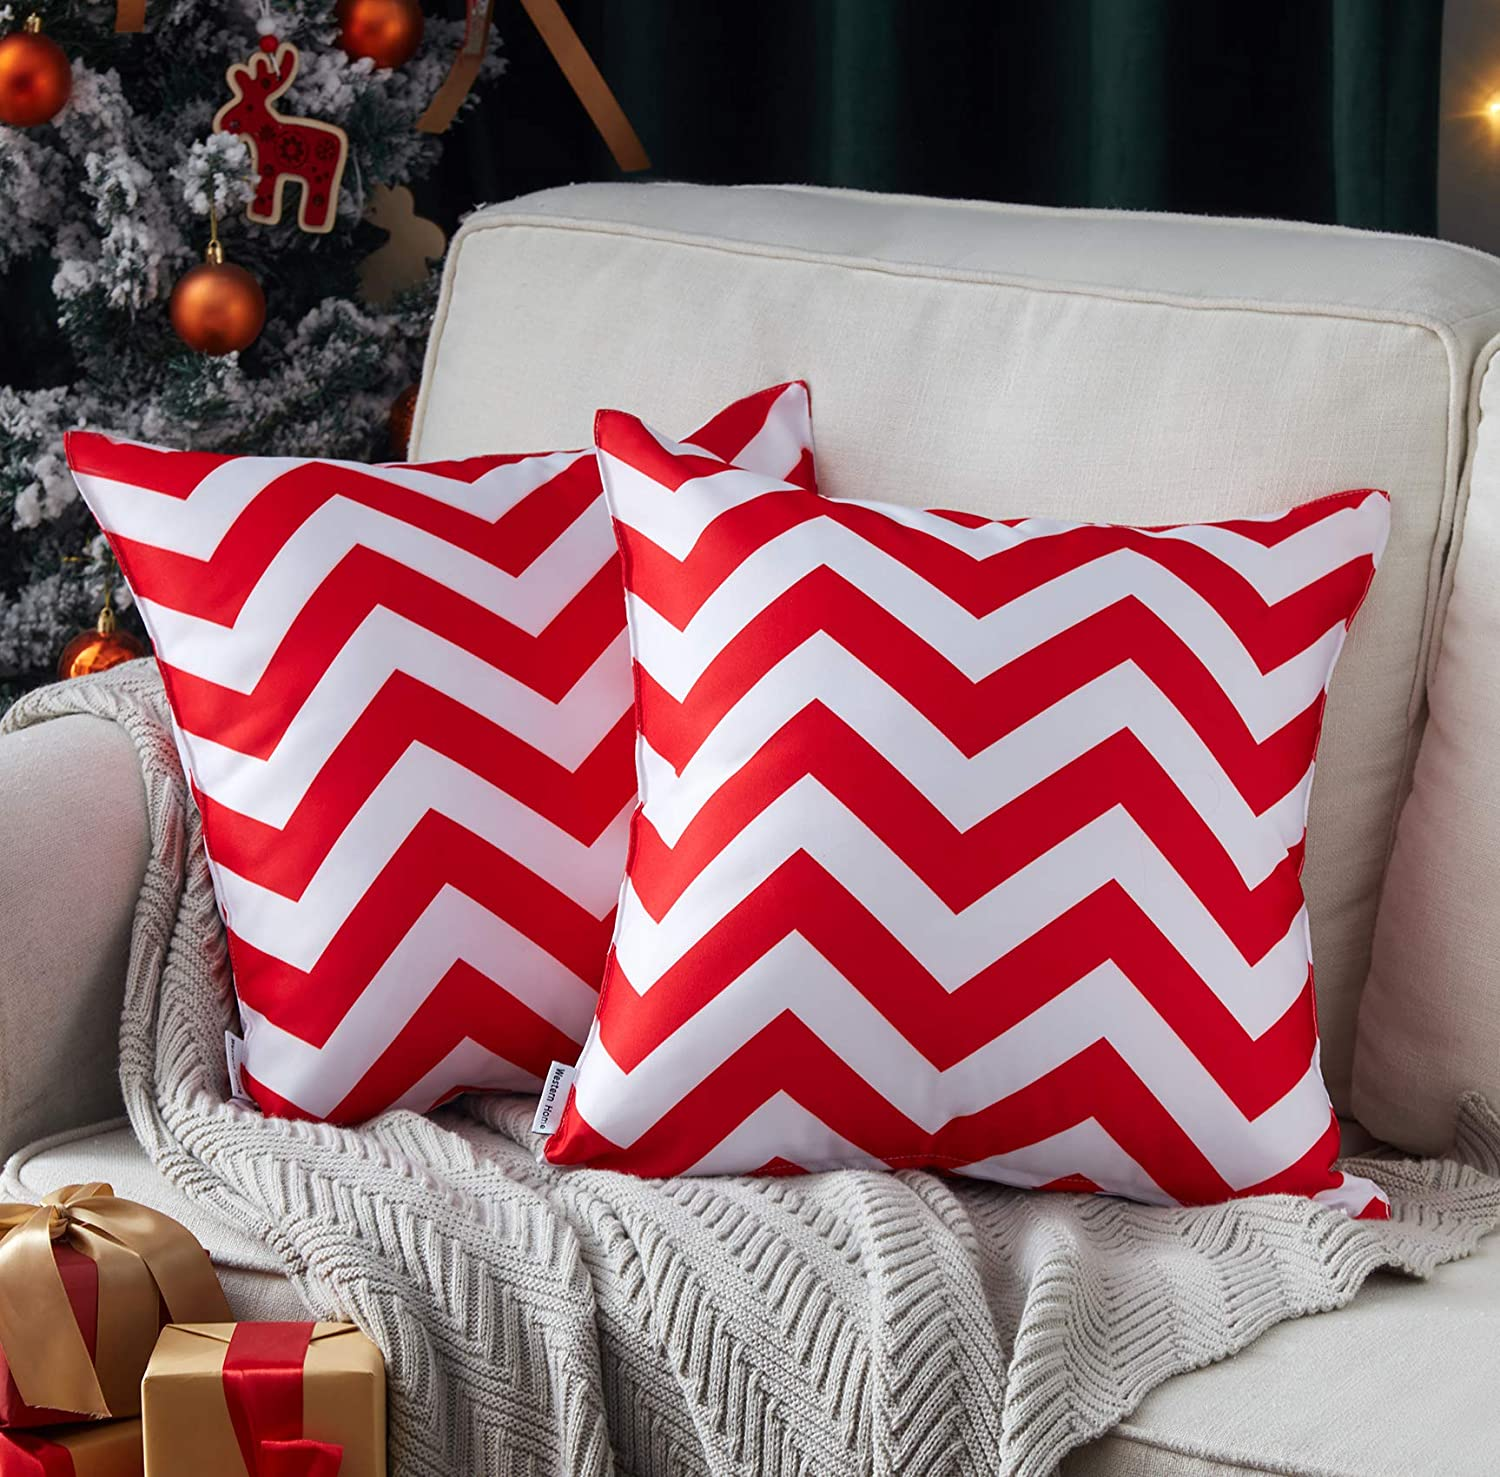 WESTERN HOME WH Pack of 2 Decorative Outdoor Christmas Waterproof Throw Pillow Covers Square Pillowcases Wave Pattern Cushion Covers Shell for Couch Patio Garden Tent Park 18 x 18 Inch Red